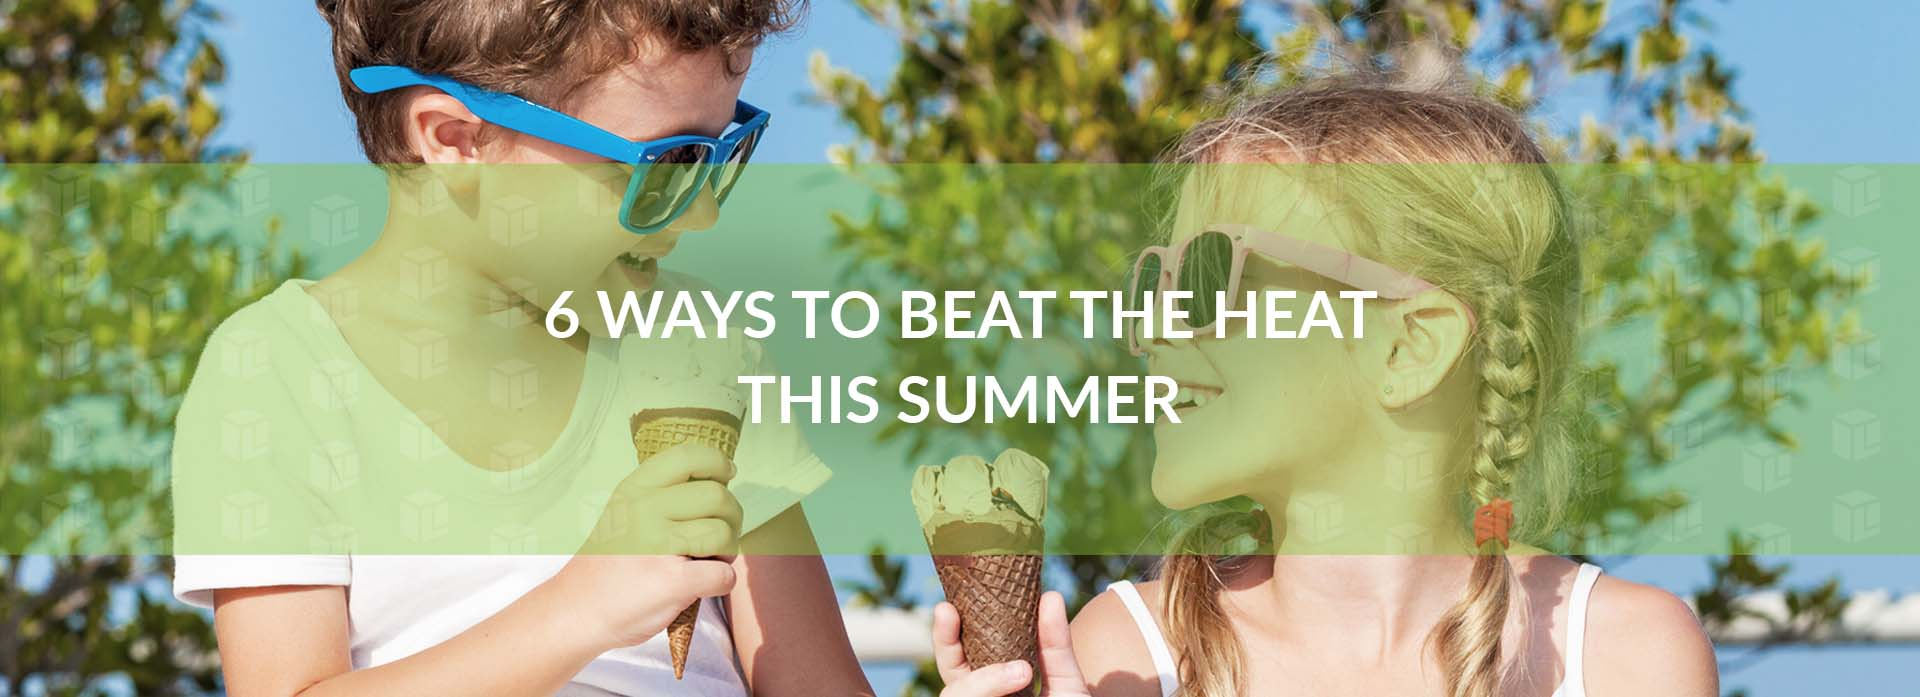 6 Ways To Beat The Heat This Summer